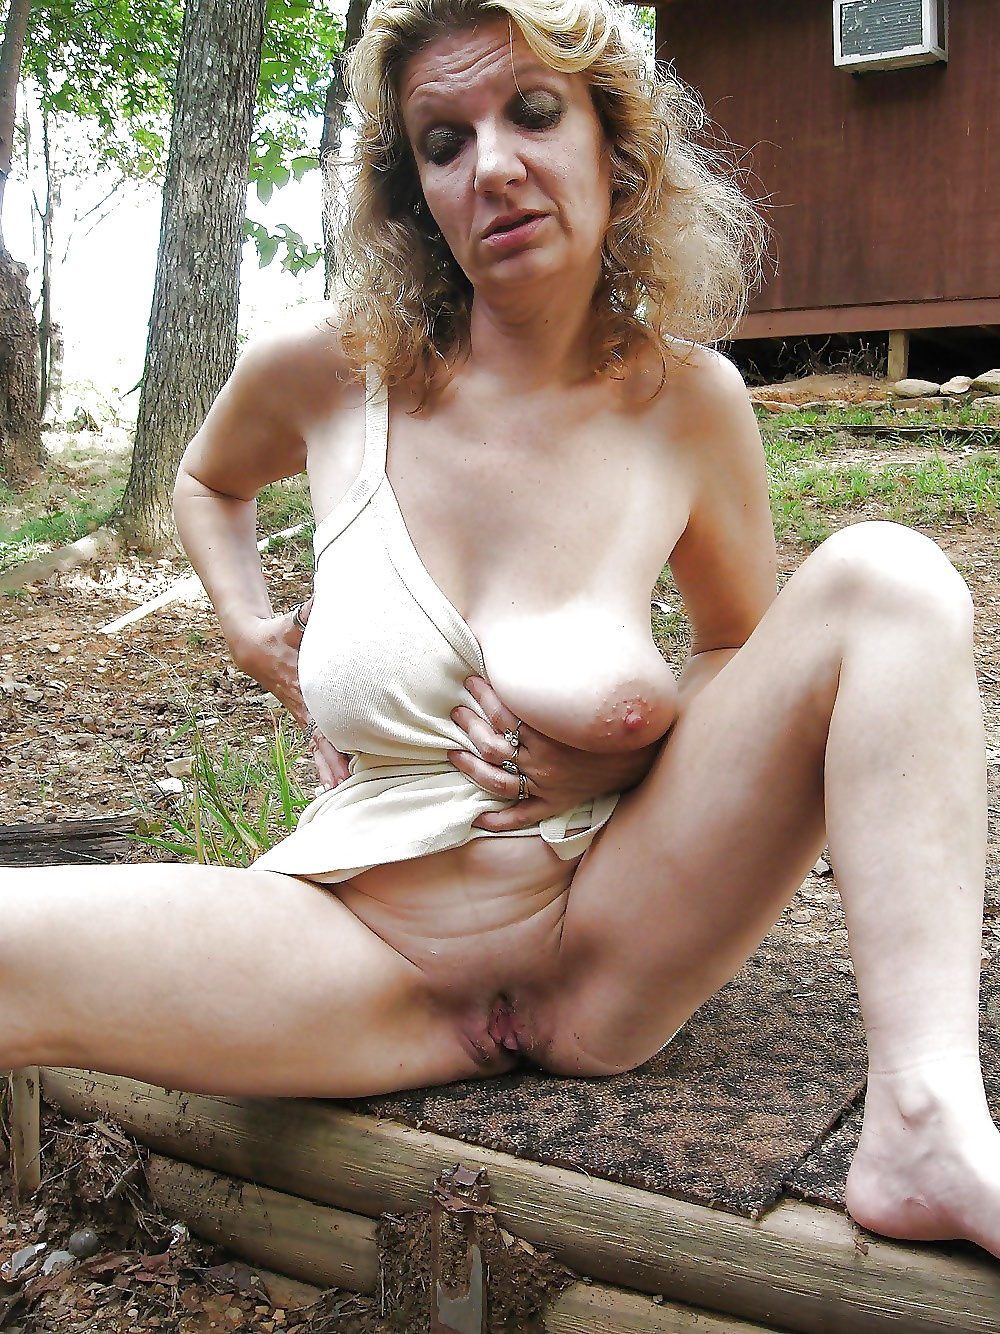 My 57 yr old white slut 10